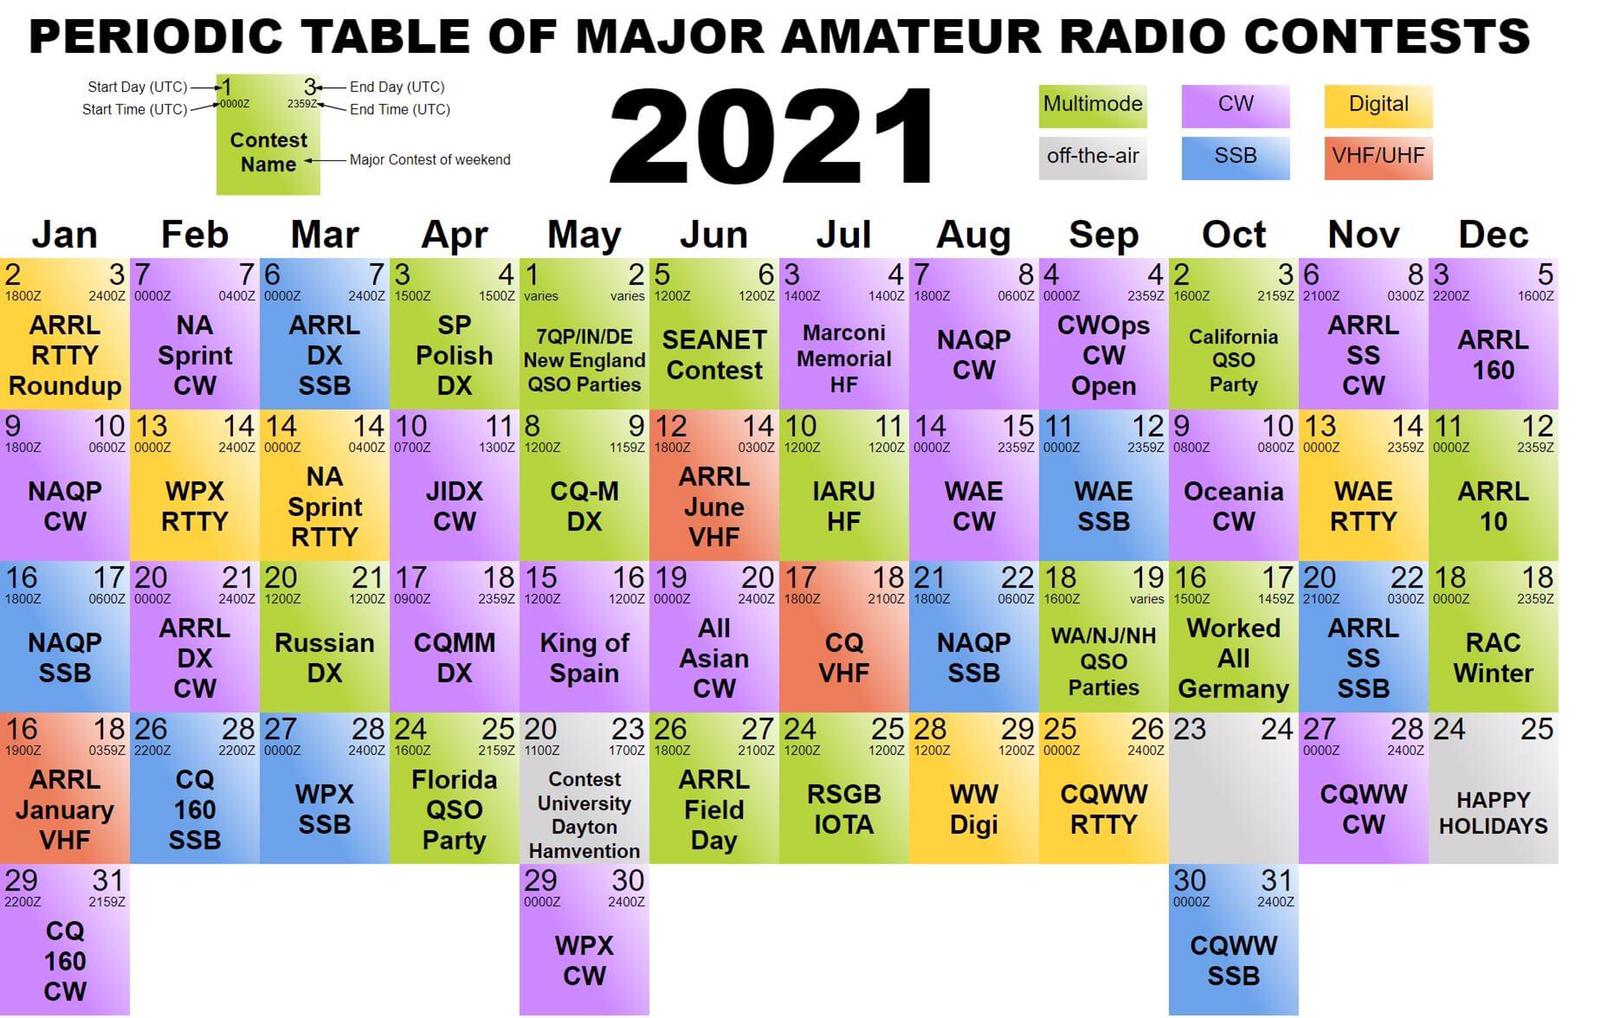 Periodic Table of Major Amateur Radio Contests